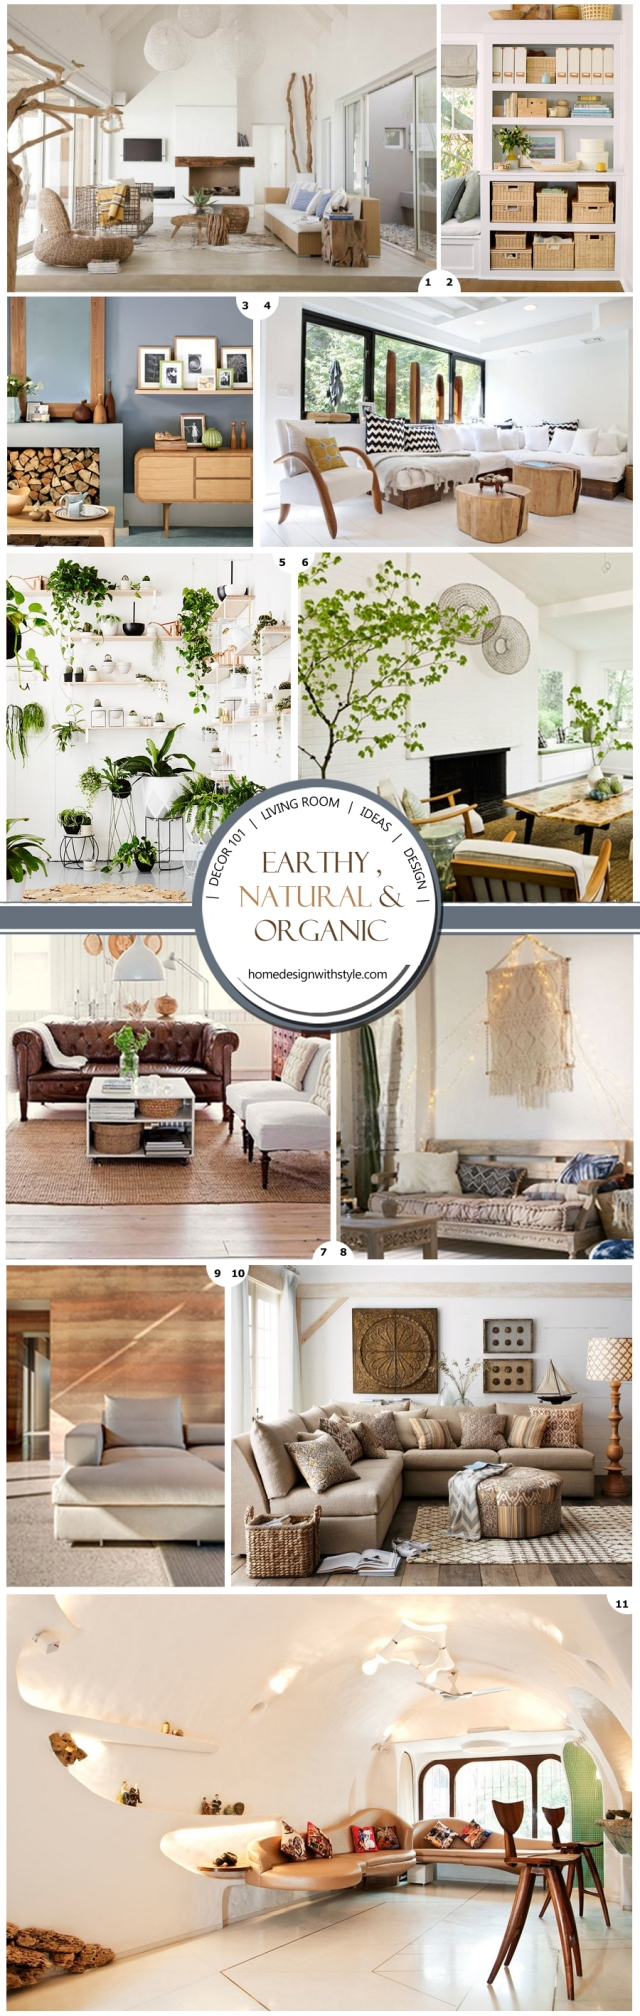 Decor 101 earthy natural organic living room design for Earthy apartment decor